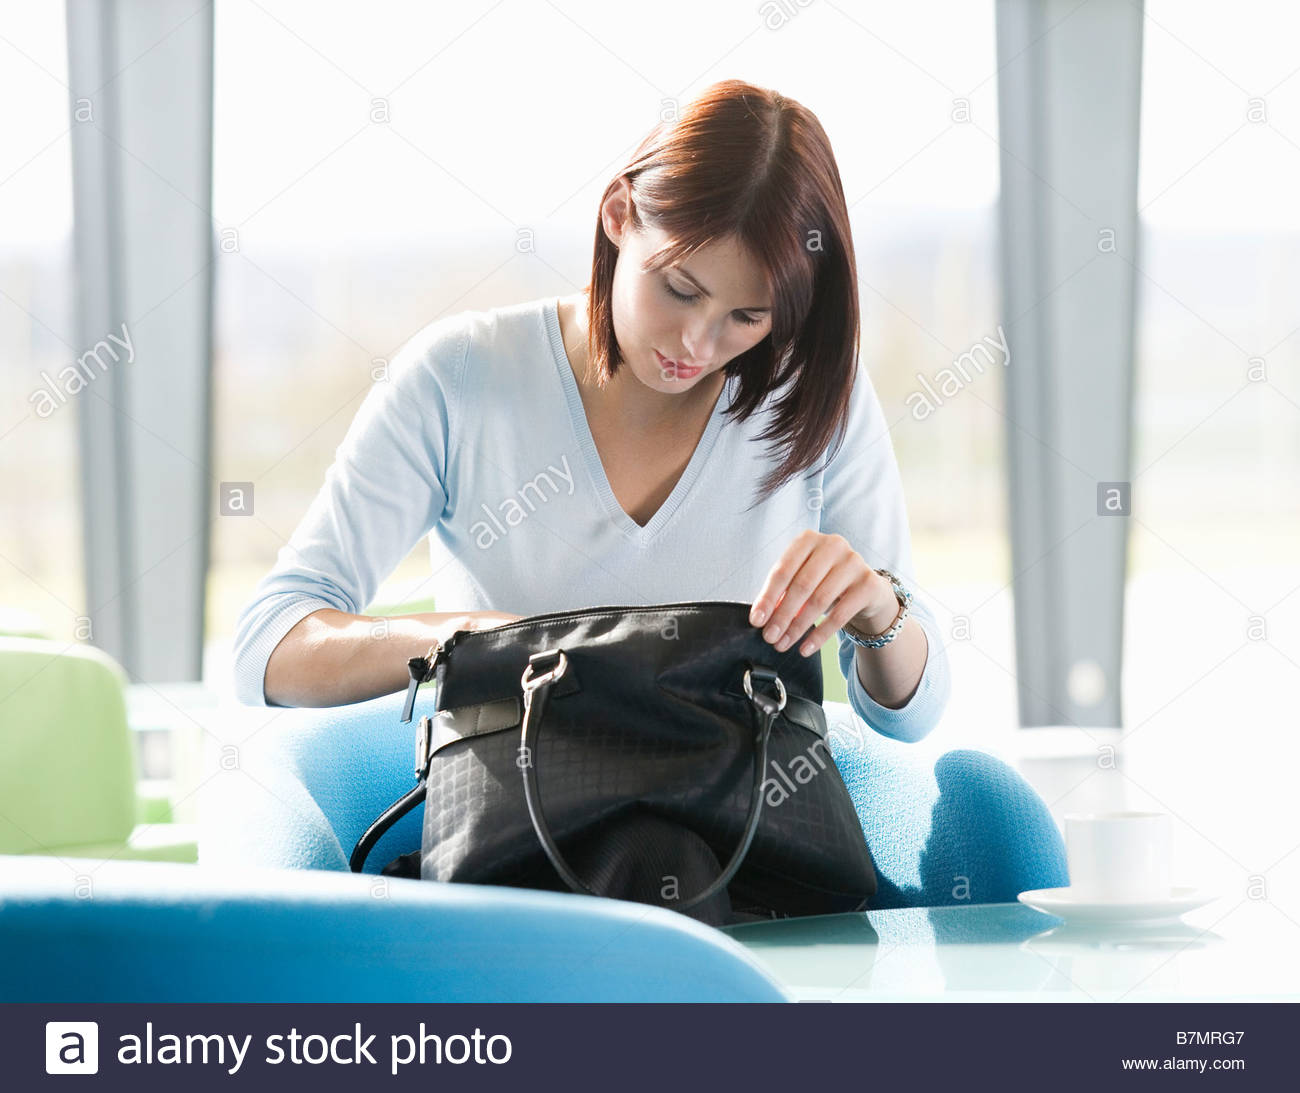 A woman sitting at a table, searching for an item in her handbag - Stock Image